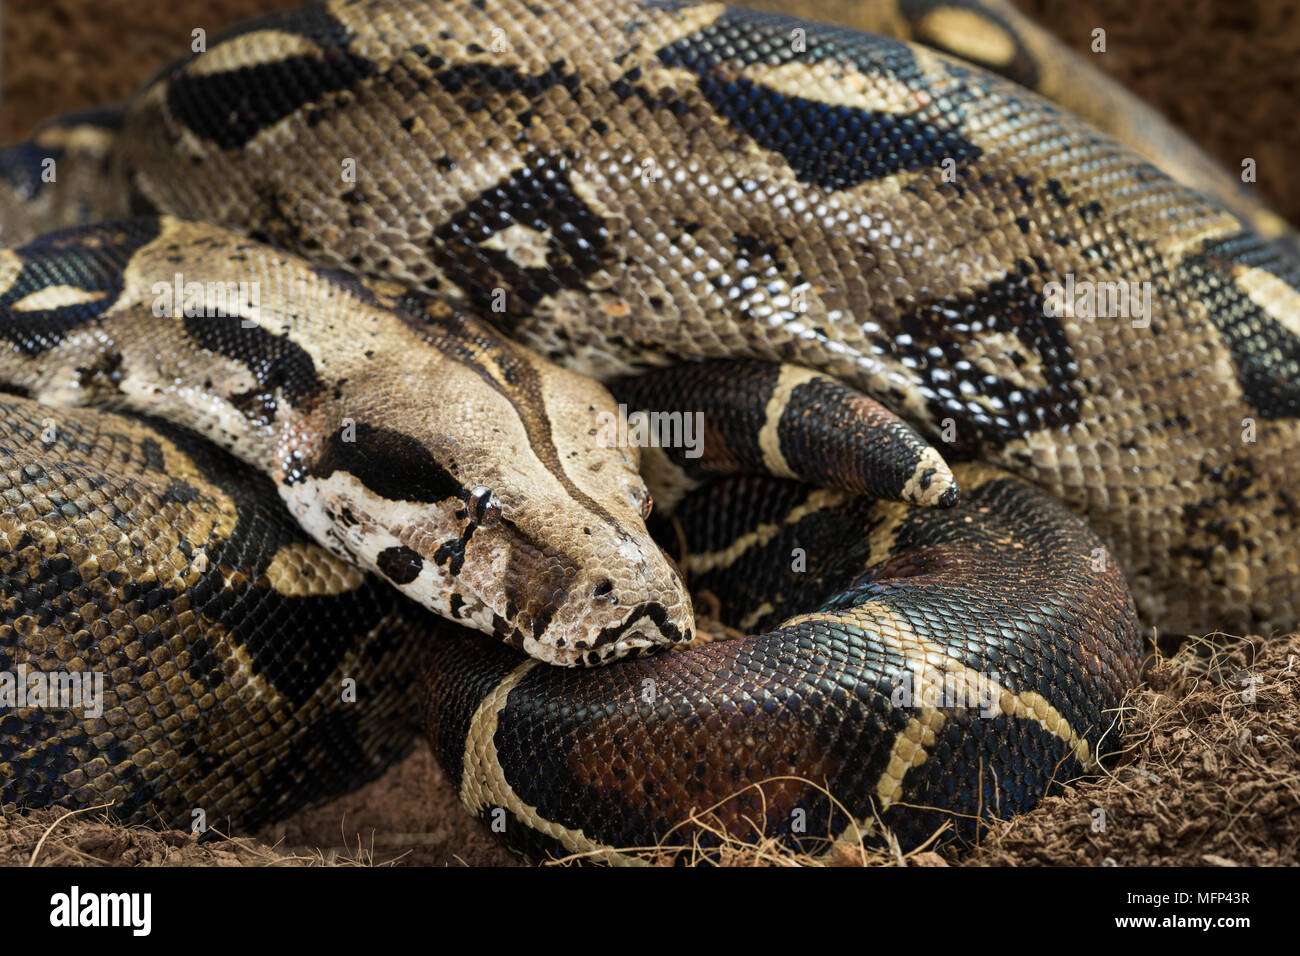 Boa constrictor imperator  Nominal Colombia - colombian